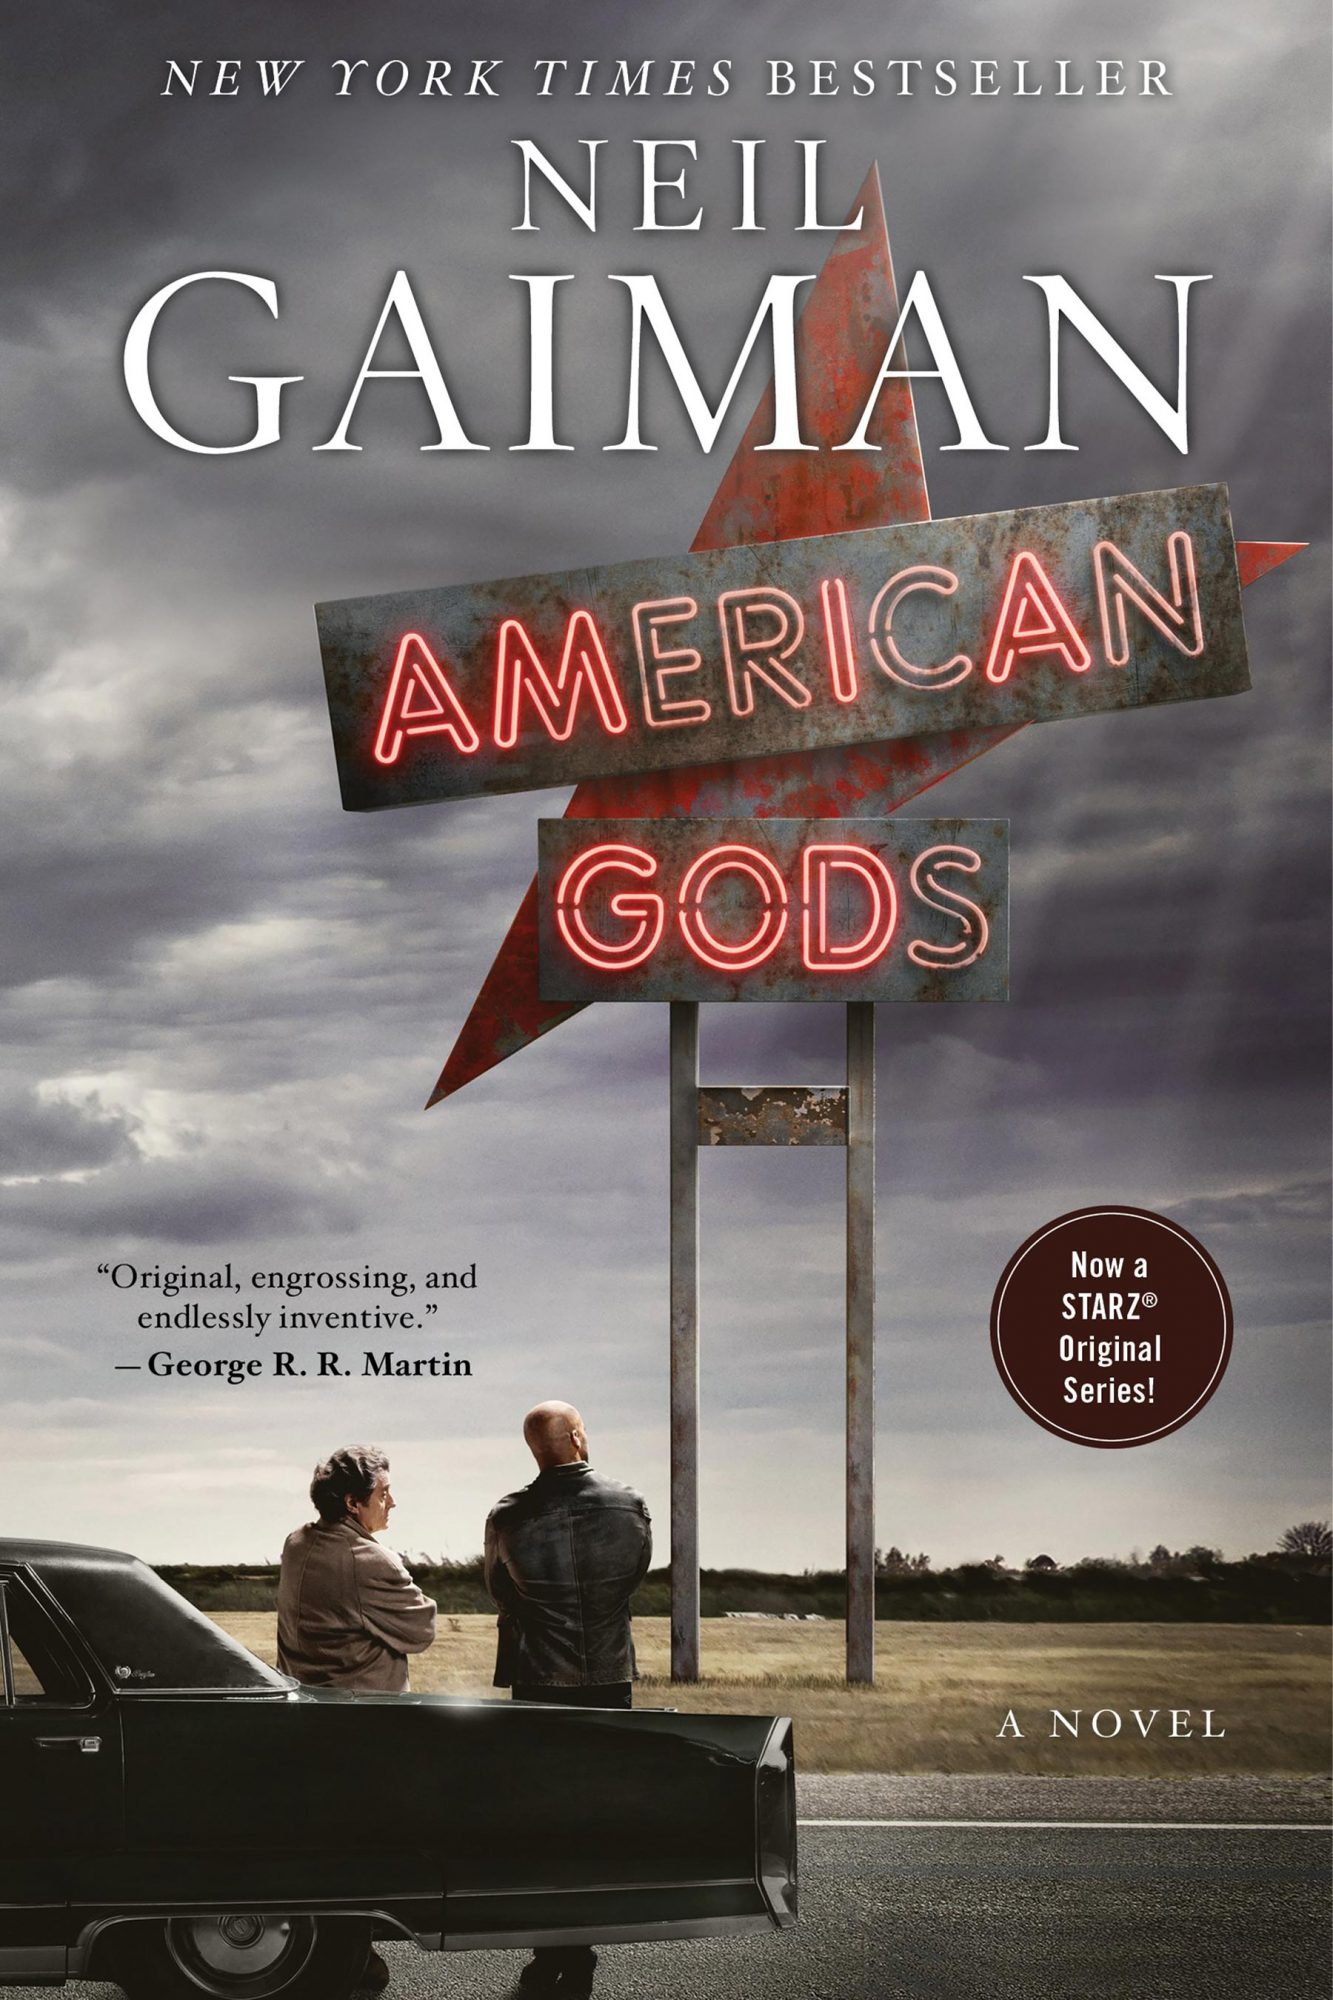 Honorary Mention: American Gods by Neil Gaiman